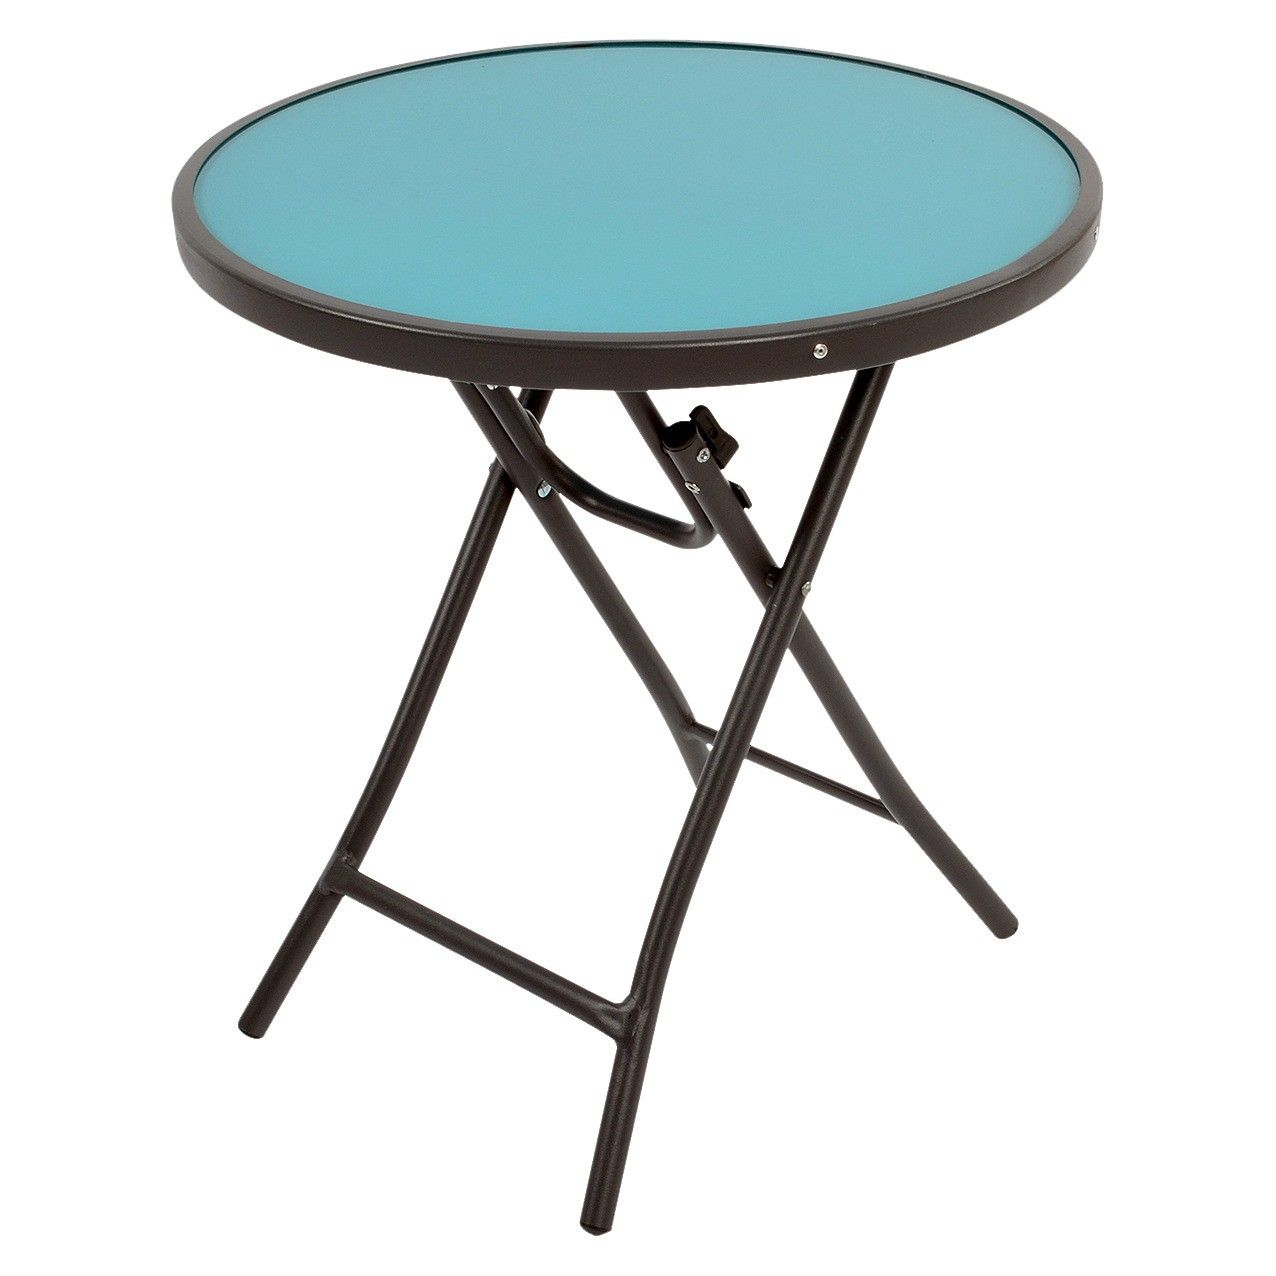 bistro accent table turq target patio patios turquoise room essentials round tablecloth grey living furniture sets brass hairpin legs resin outdoor side chair design roland drum